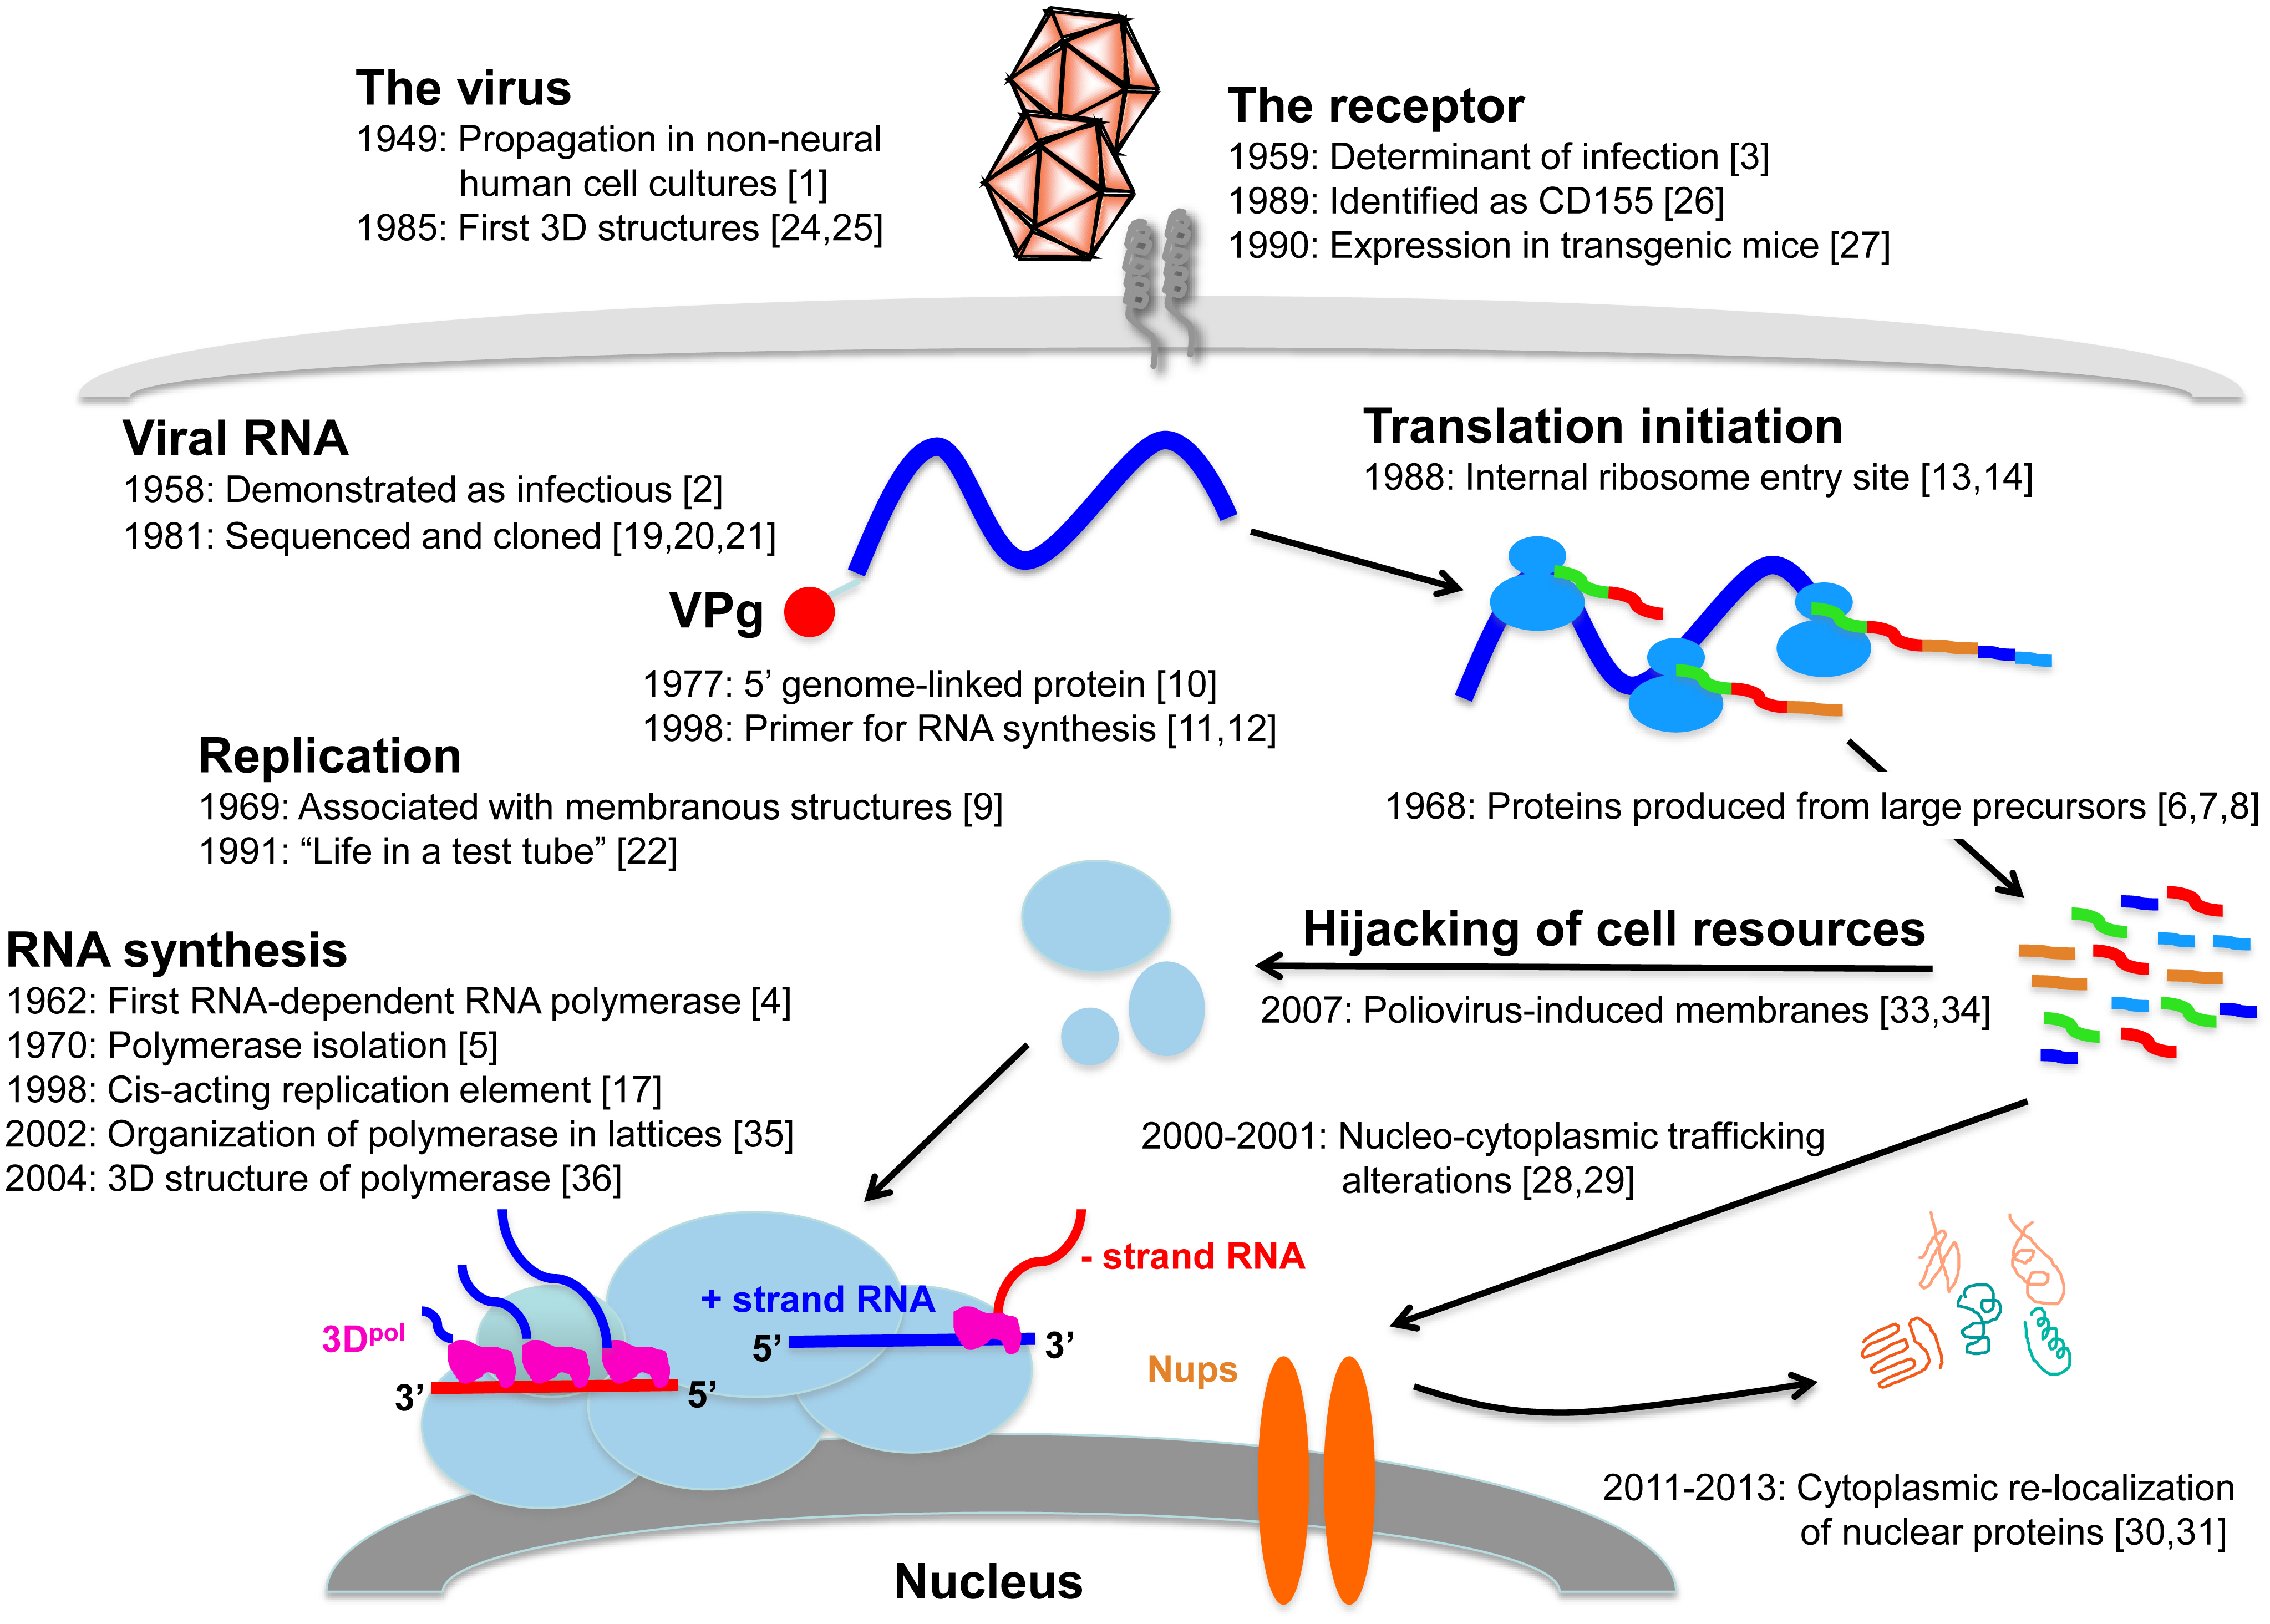 Replication cycle of poliovirus, annotated with references to key findings during the past 65 years.